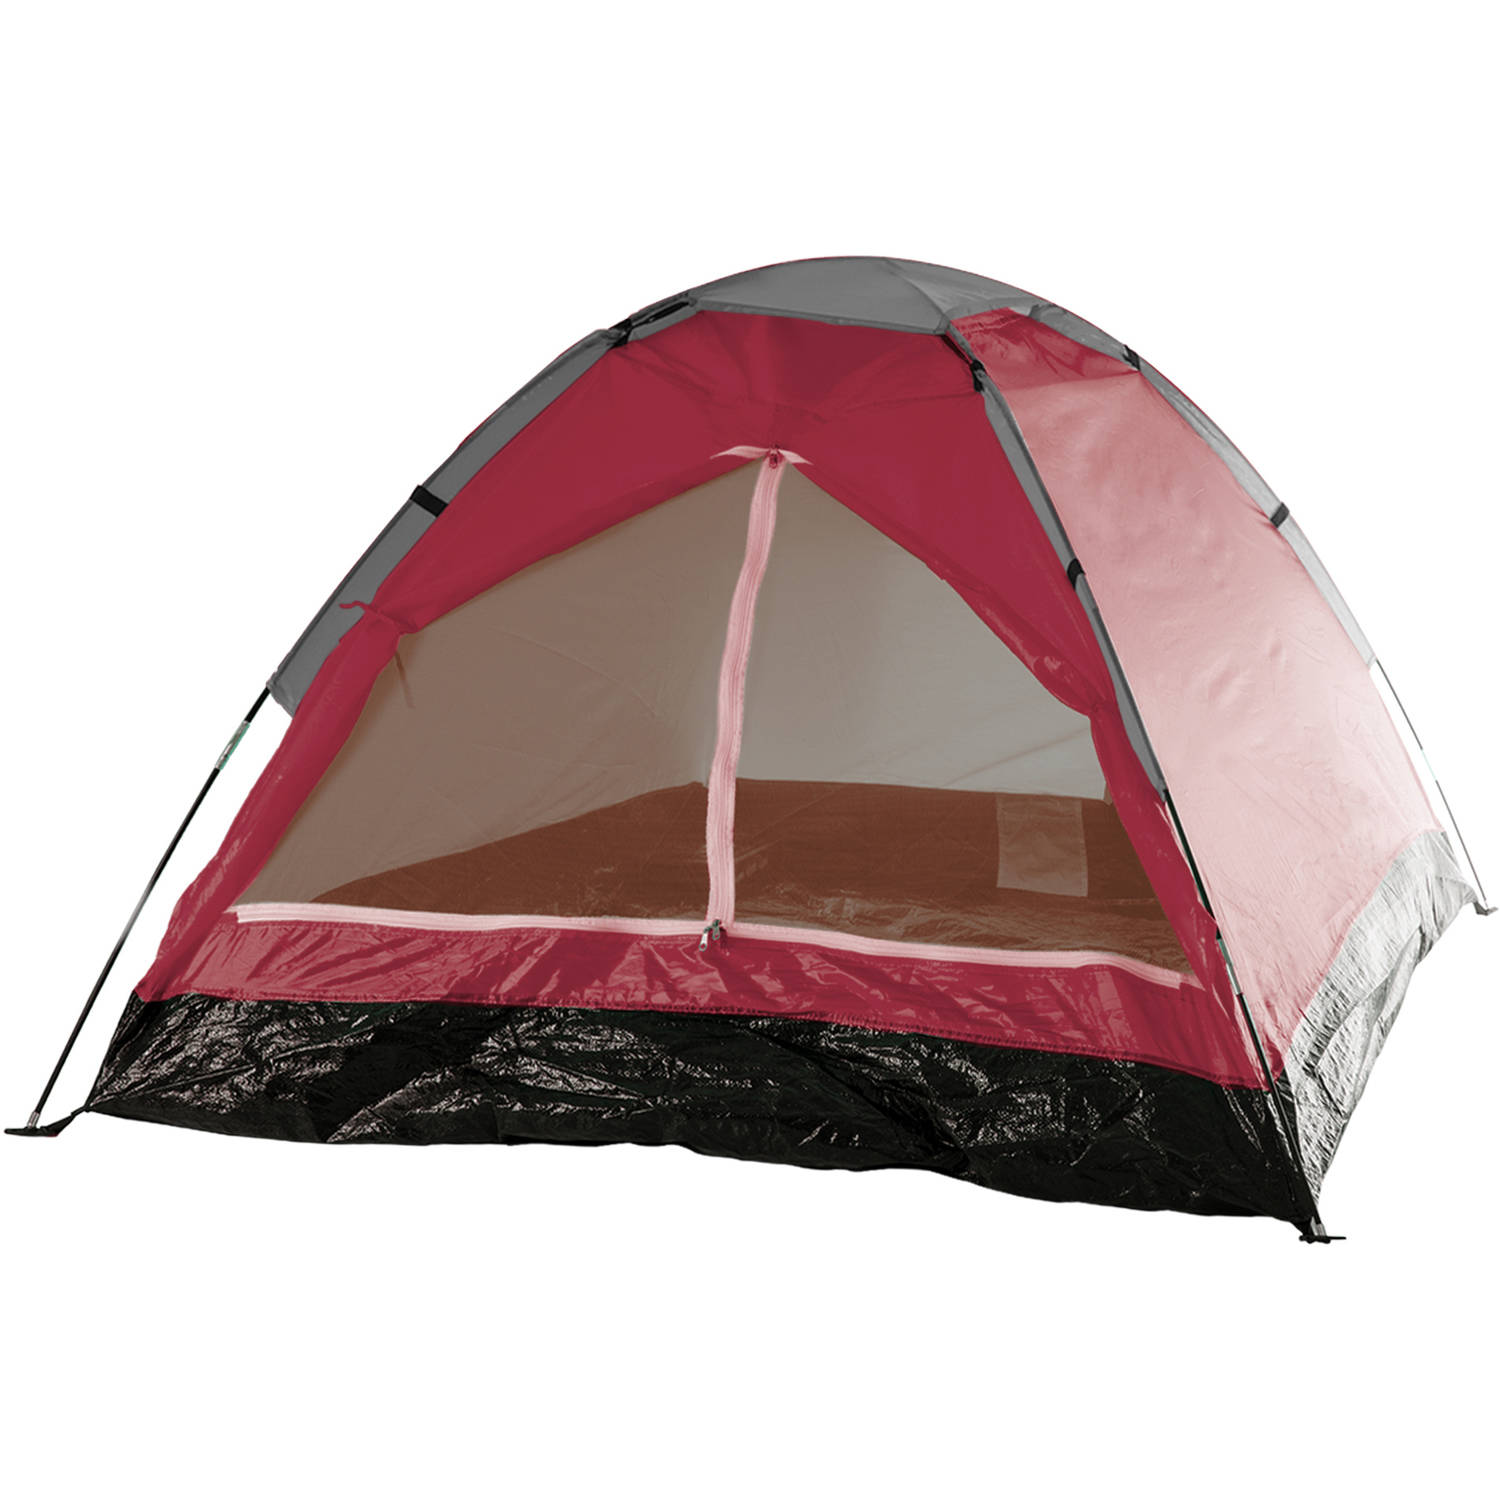 2-Person Tent Dome Tents for C&ing with Carry Bag by Wakeman Outdoors (  sc 1 st  Walmart & 2-Person Tent Dome Tents for Camping with Carry Bag by Wakeman ...